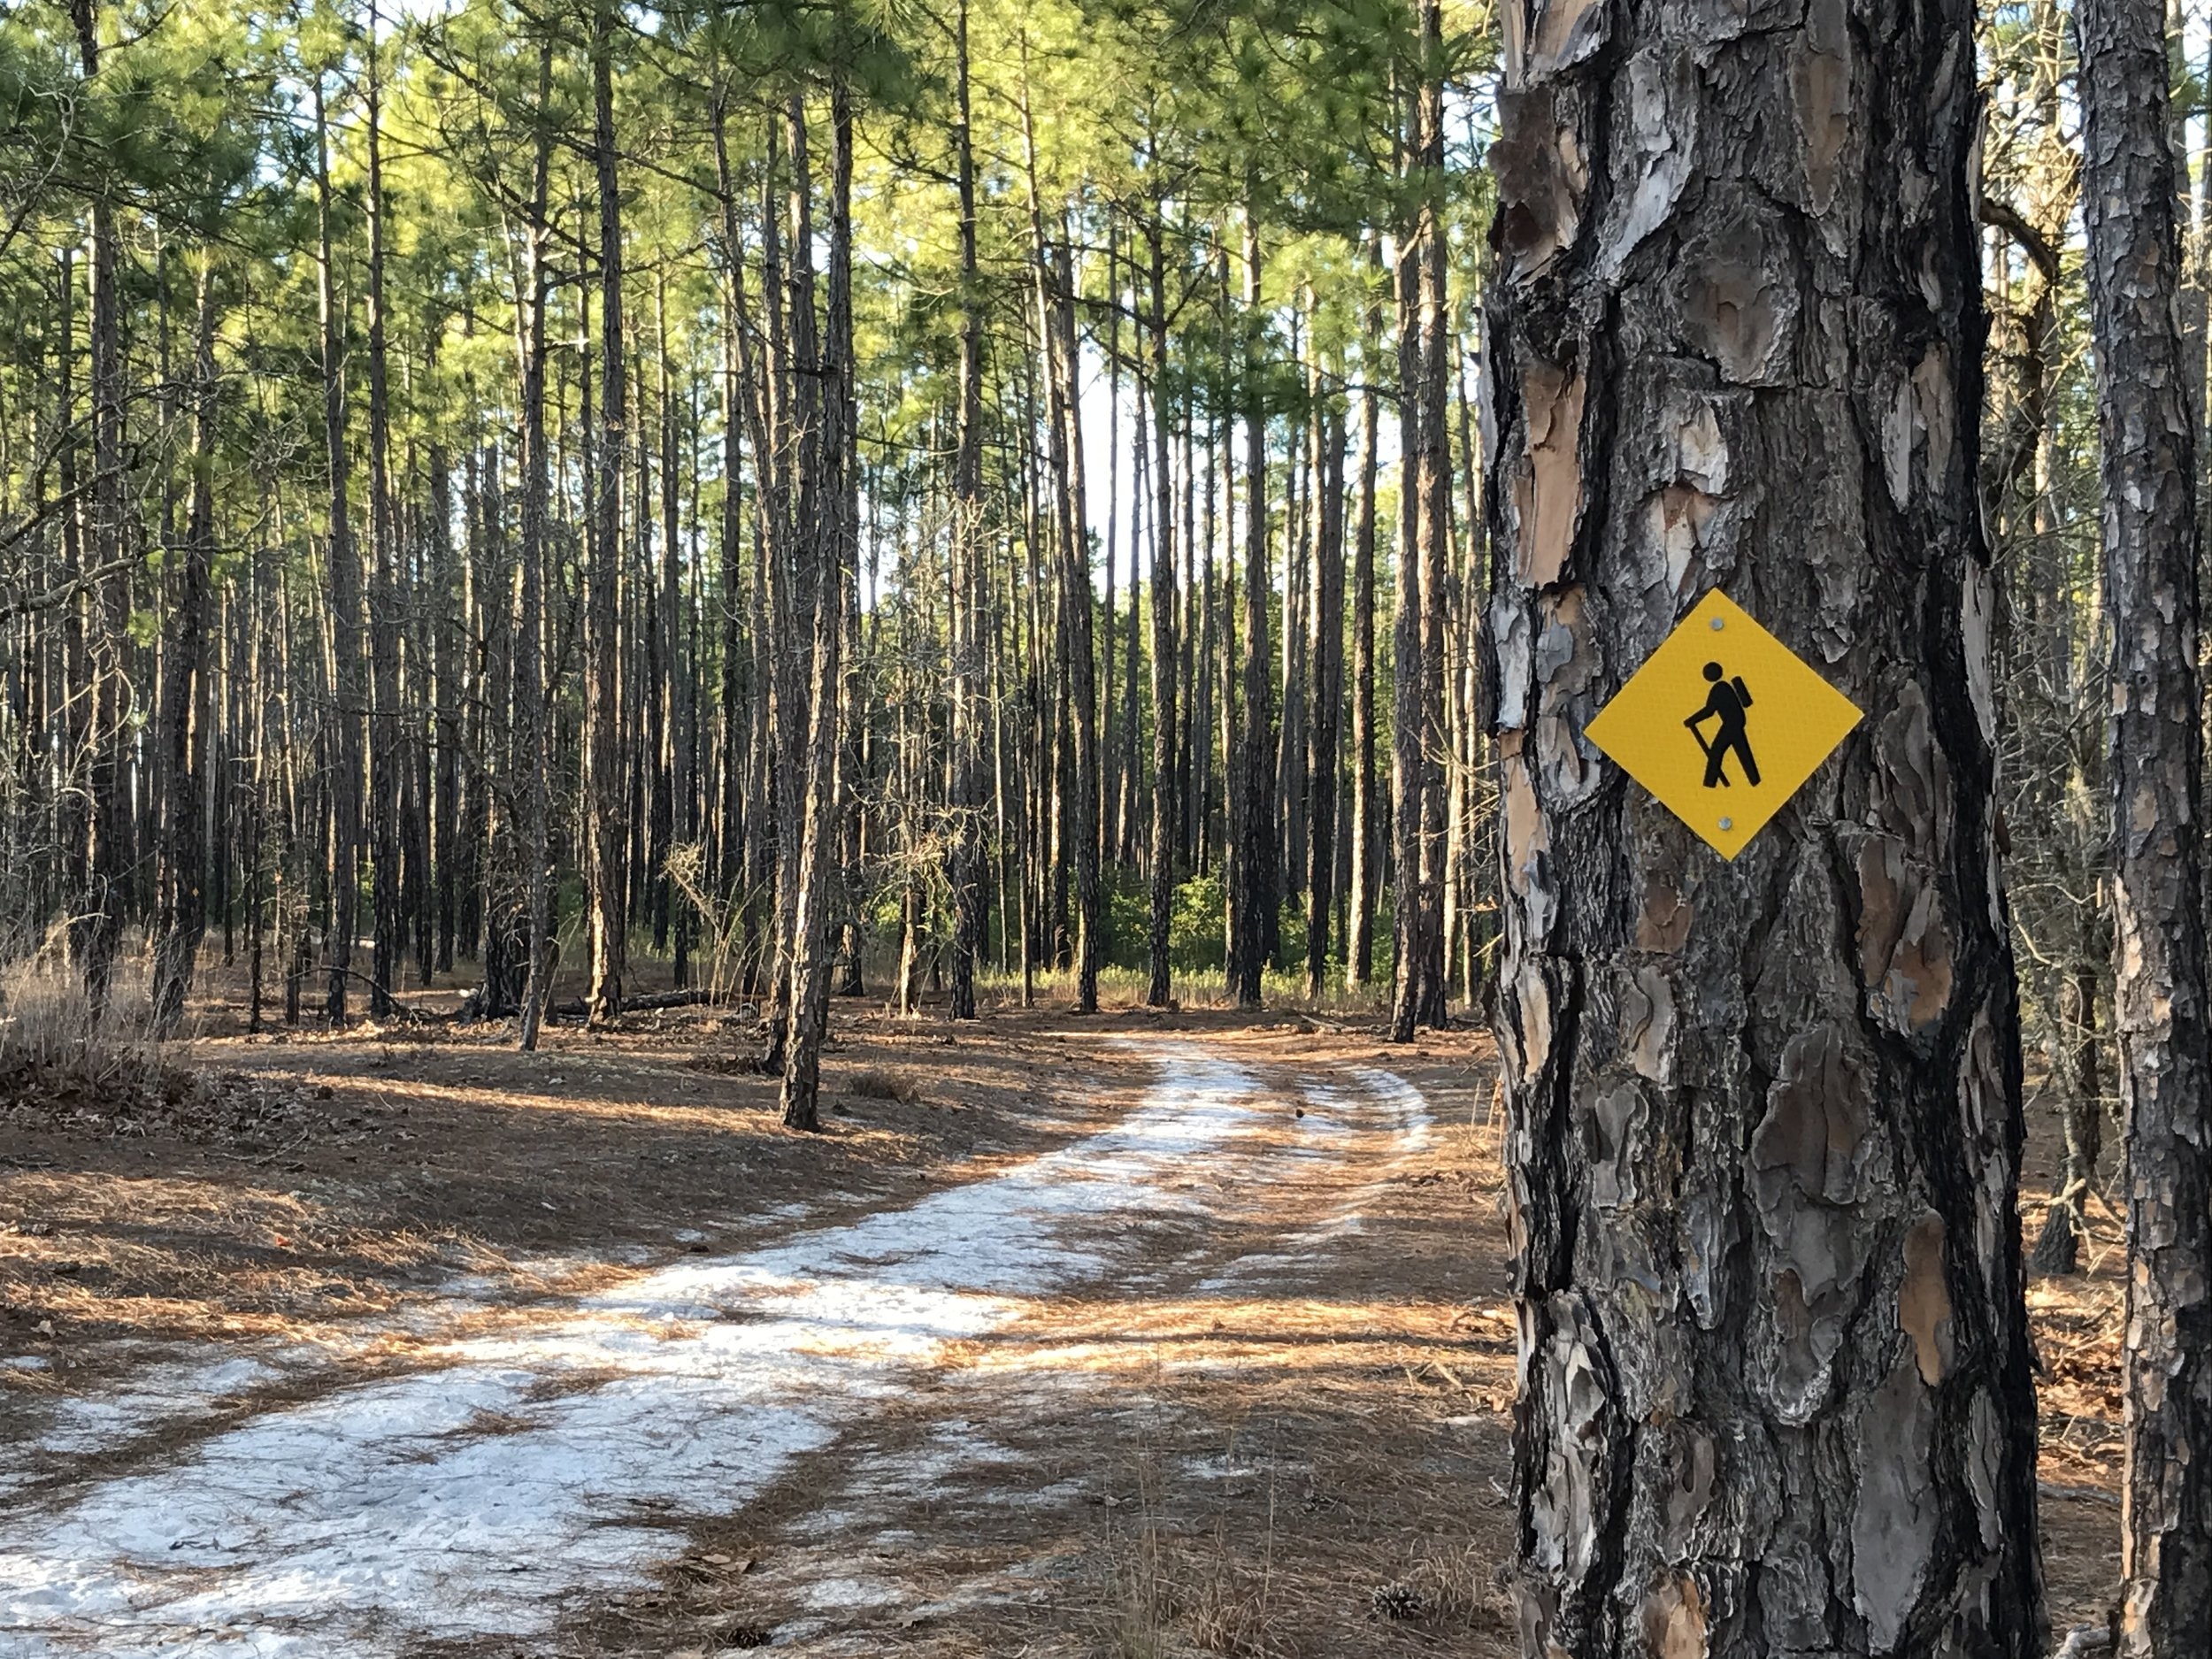 Commissioners approved a request by the Friends of Lake Waccamaw State Park to apply for a Department of Transportation grant to study and plan a trail circling through the town and the park.